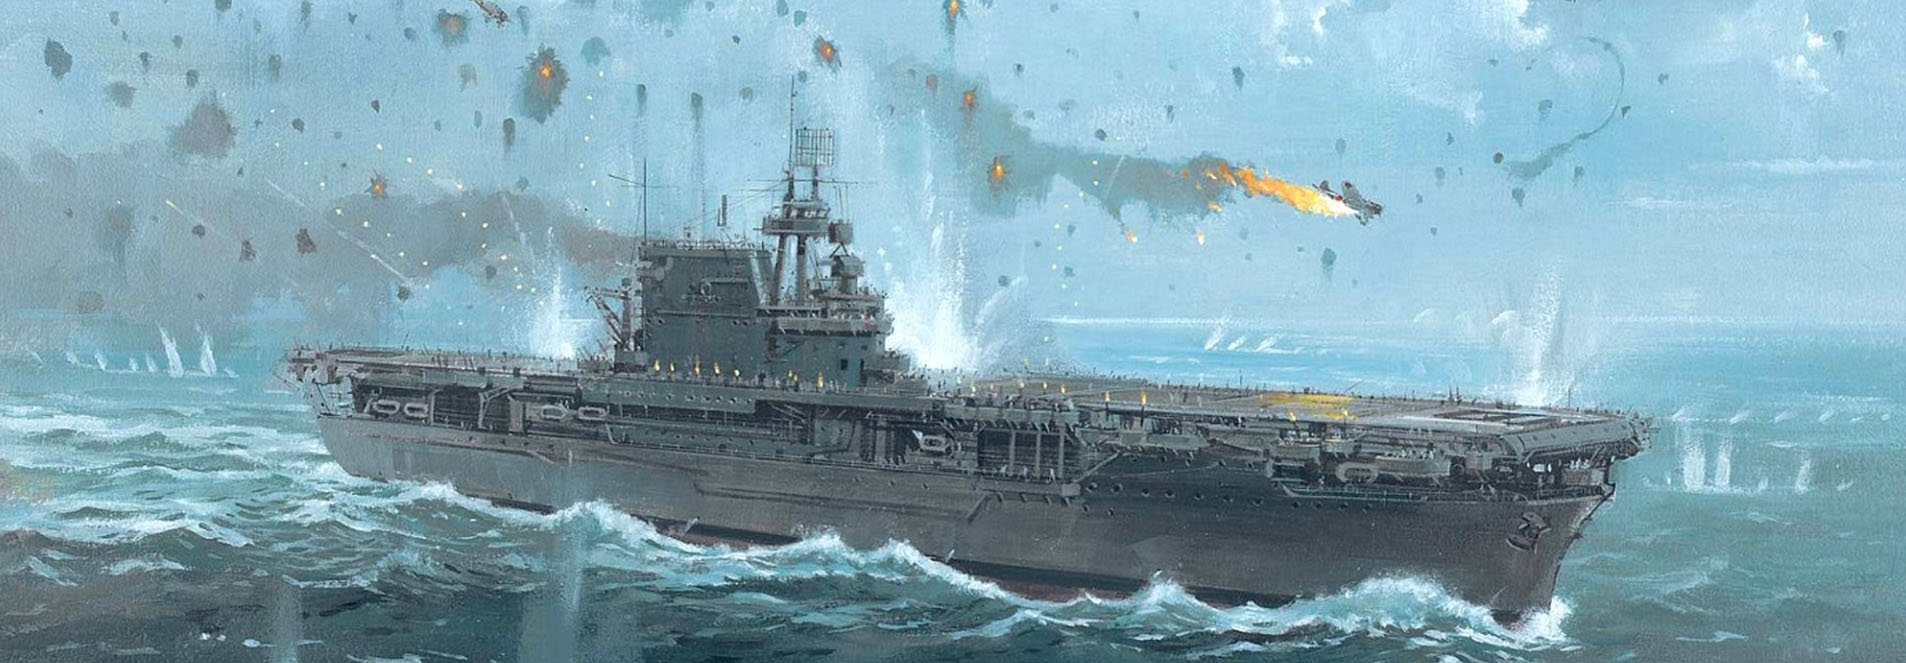 WW2 USN Aircraft Carriers